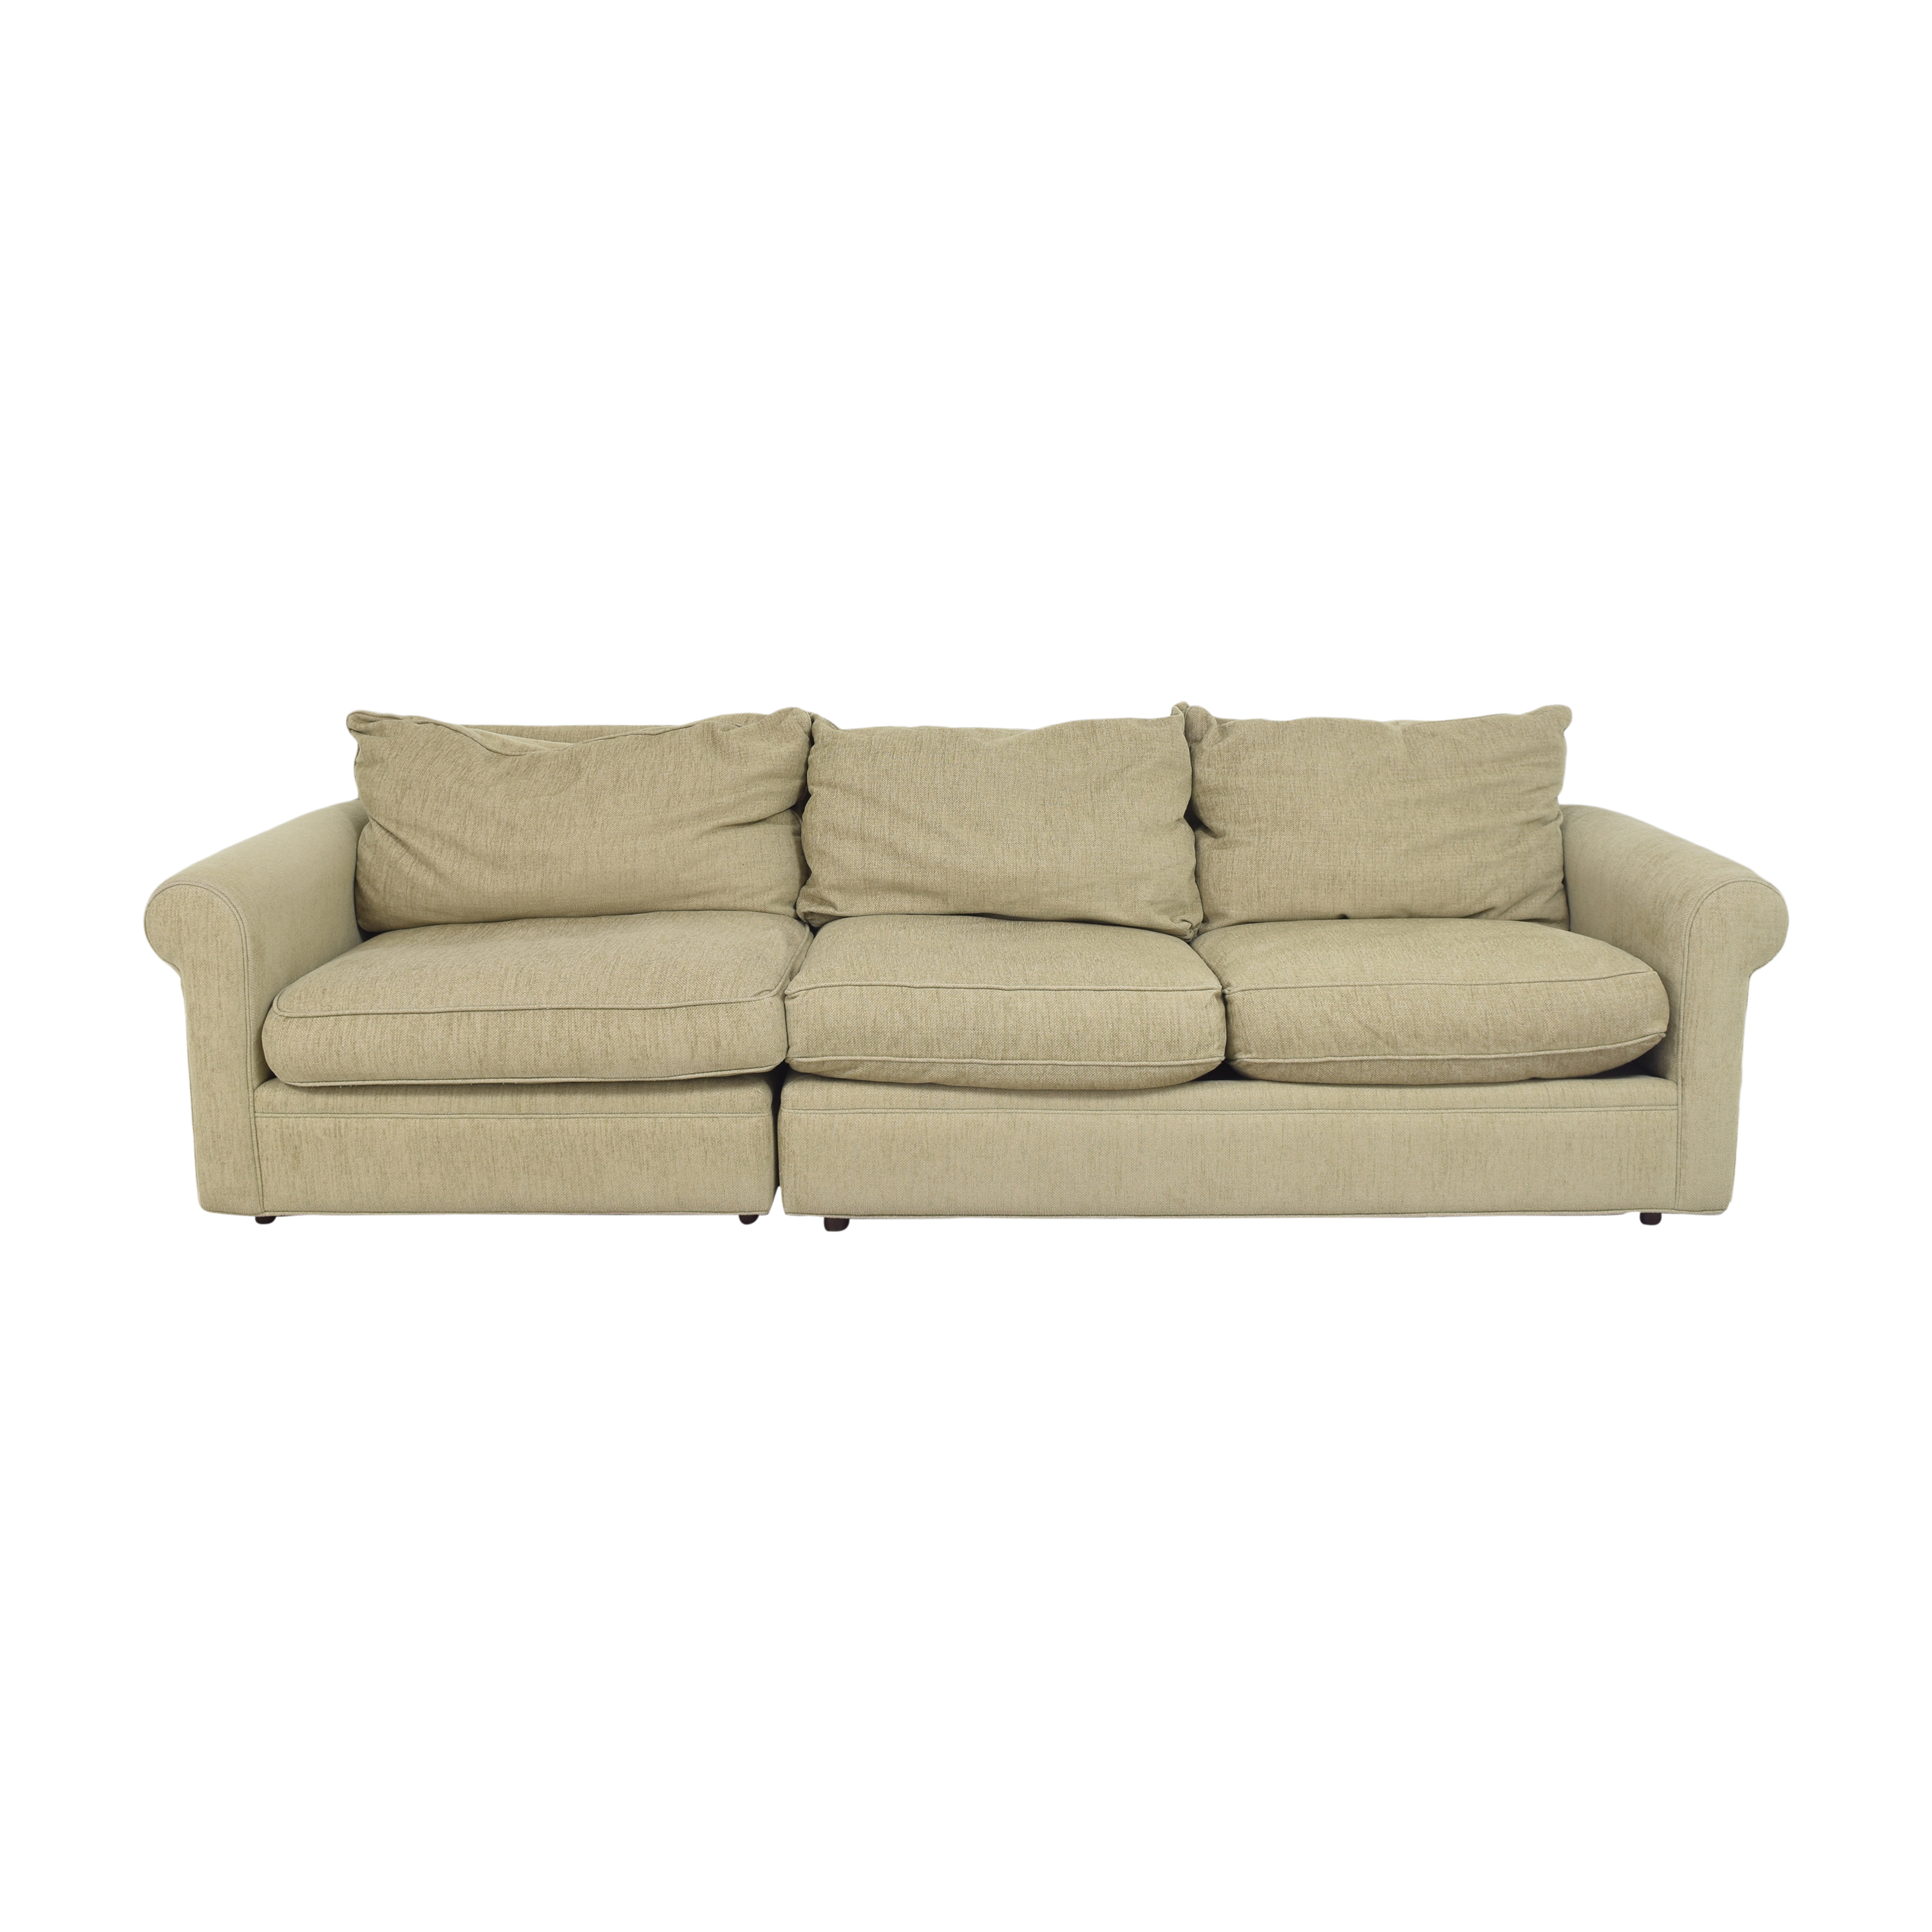 Macy's Macy's Modern Concepts Sofa with Ottoman used